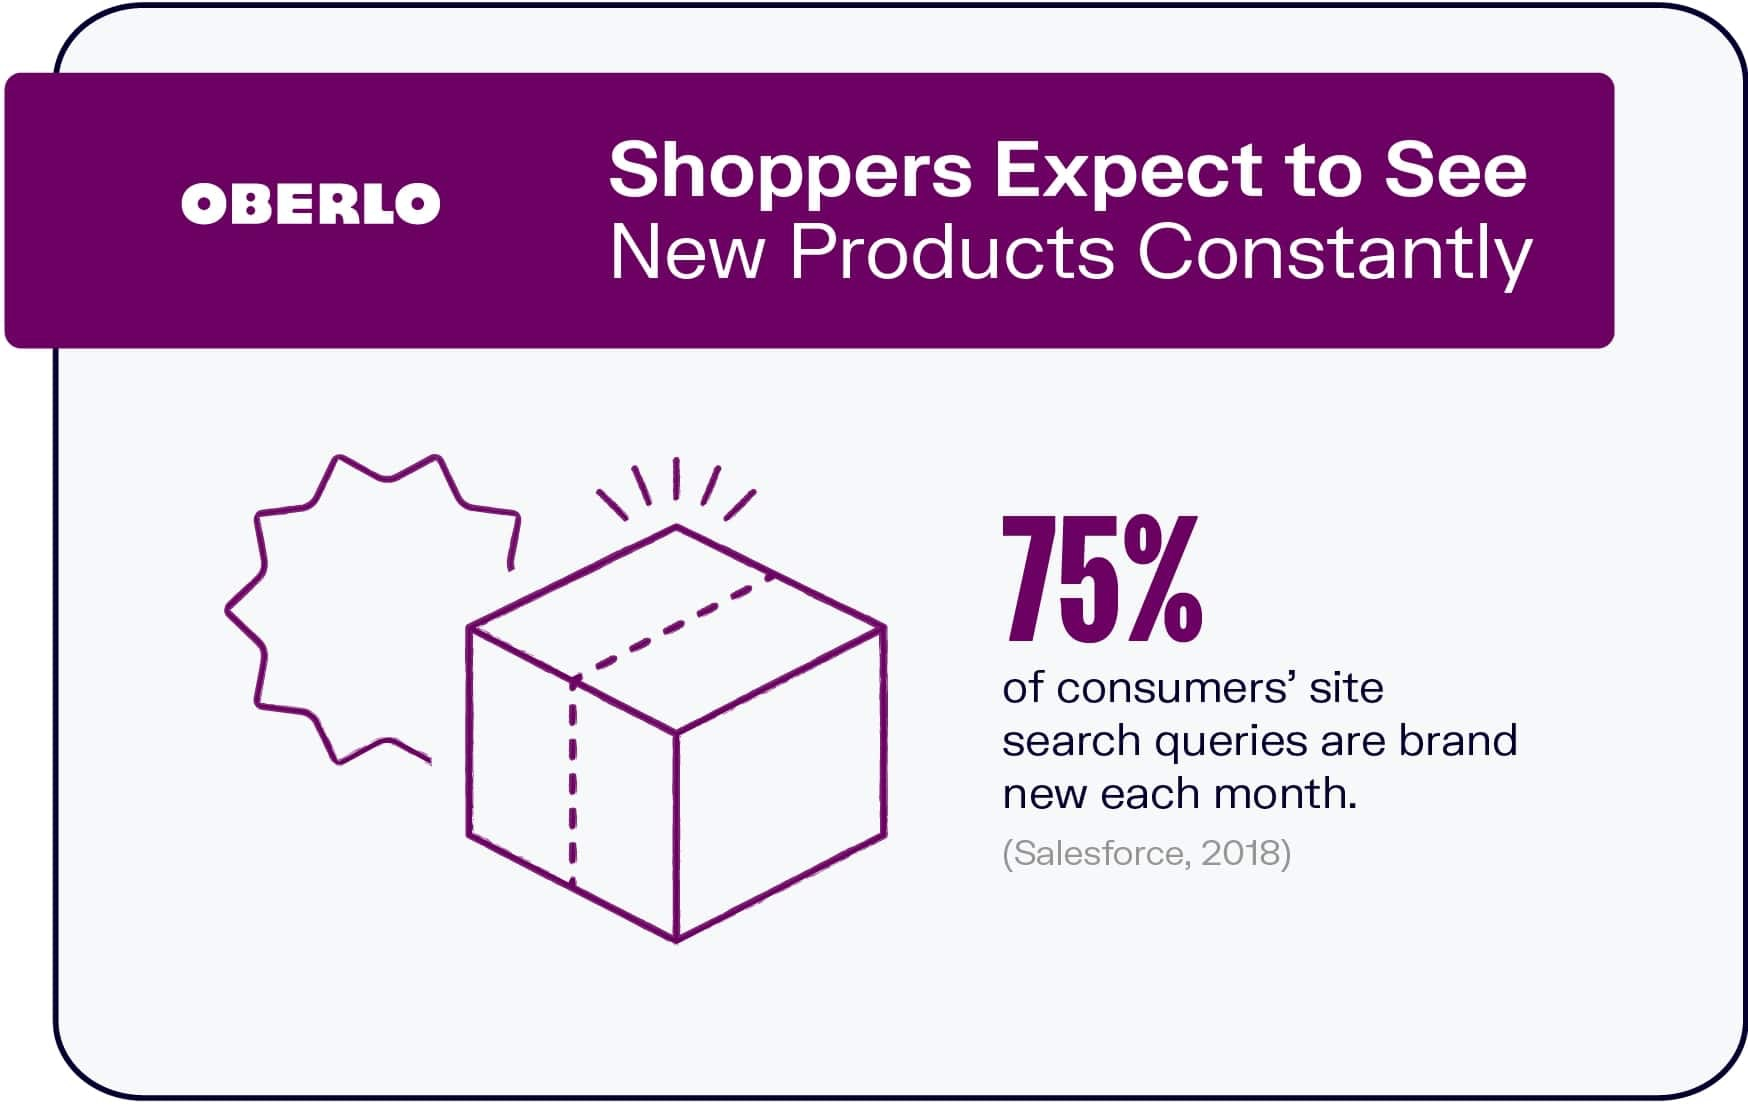 Shoppers Expect to See New Products Constantly